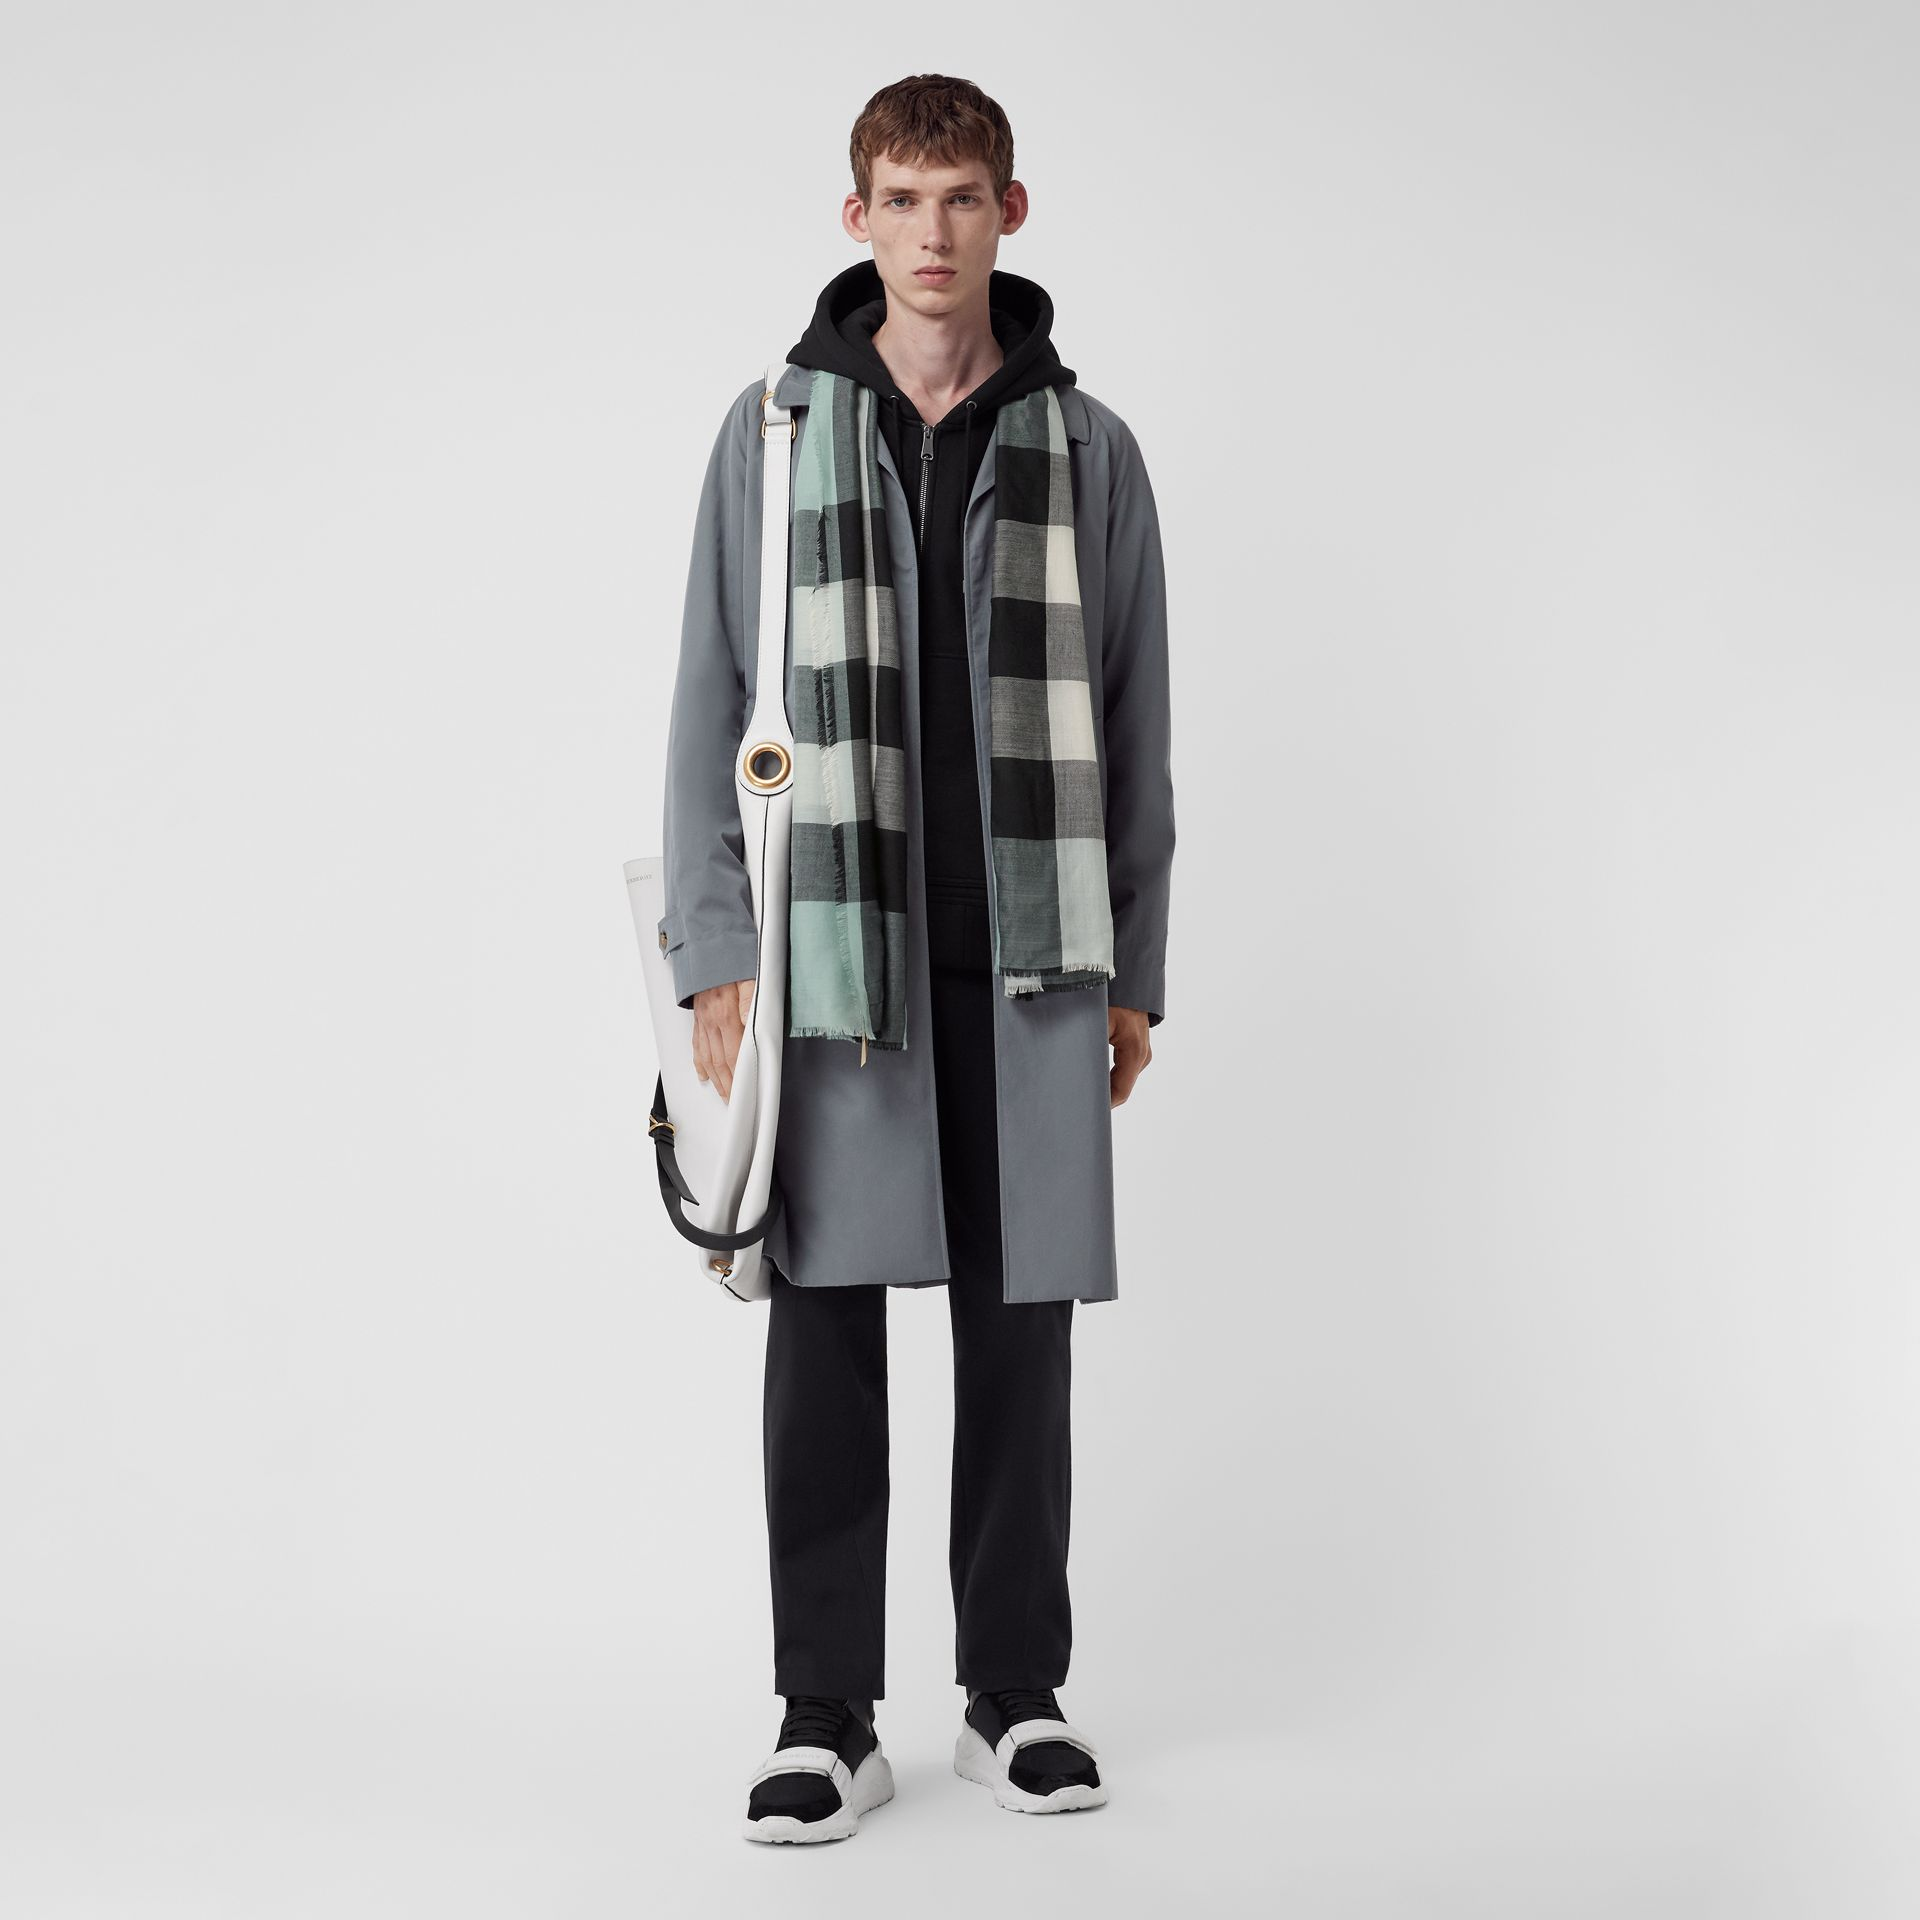 Lightweight Check Cashmere Scarf in Dusty Mint | Burberry United States - gallery image 3